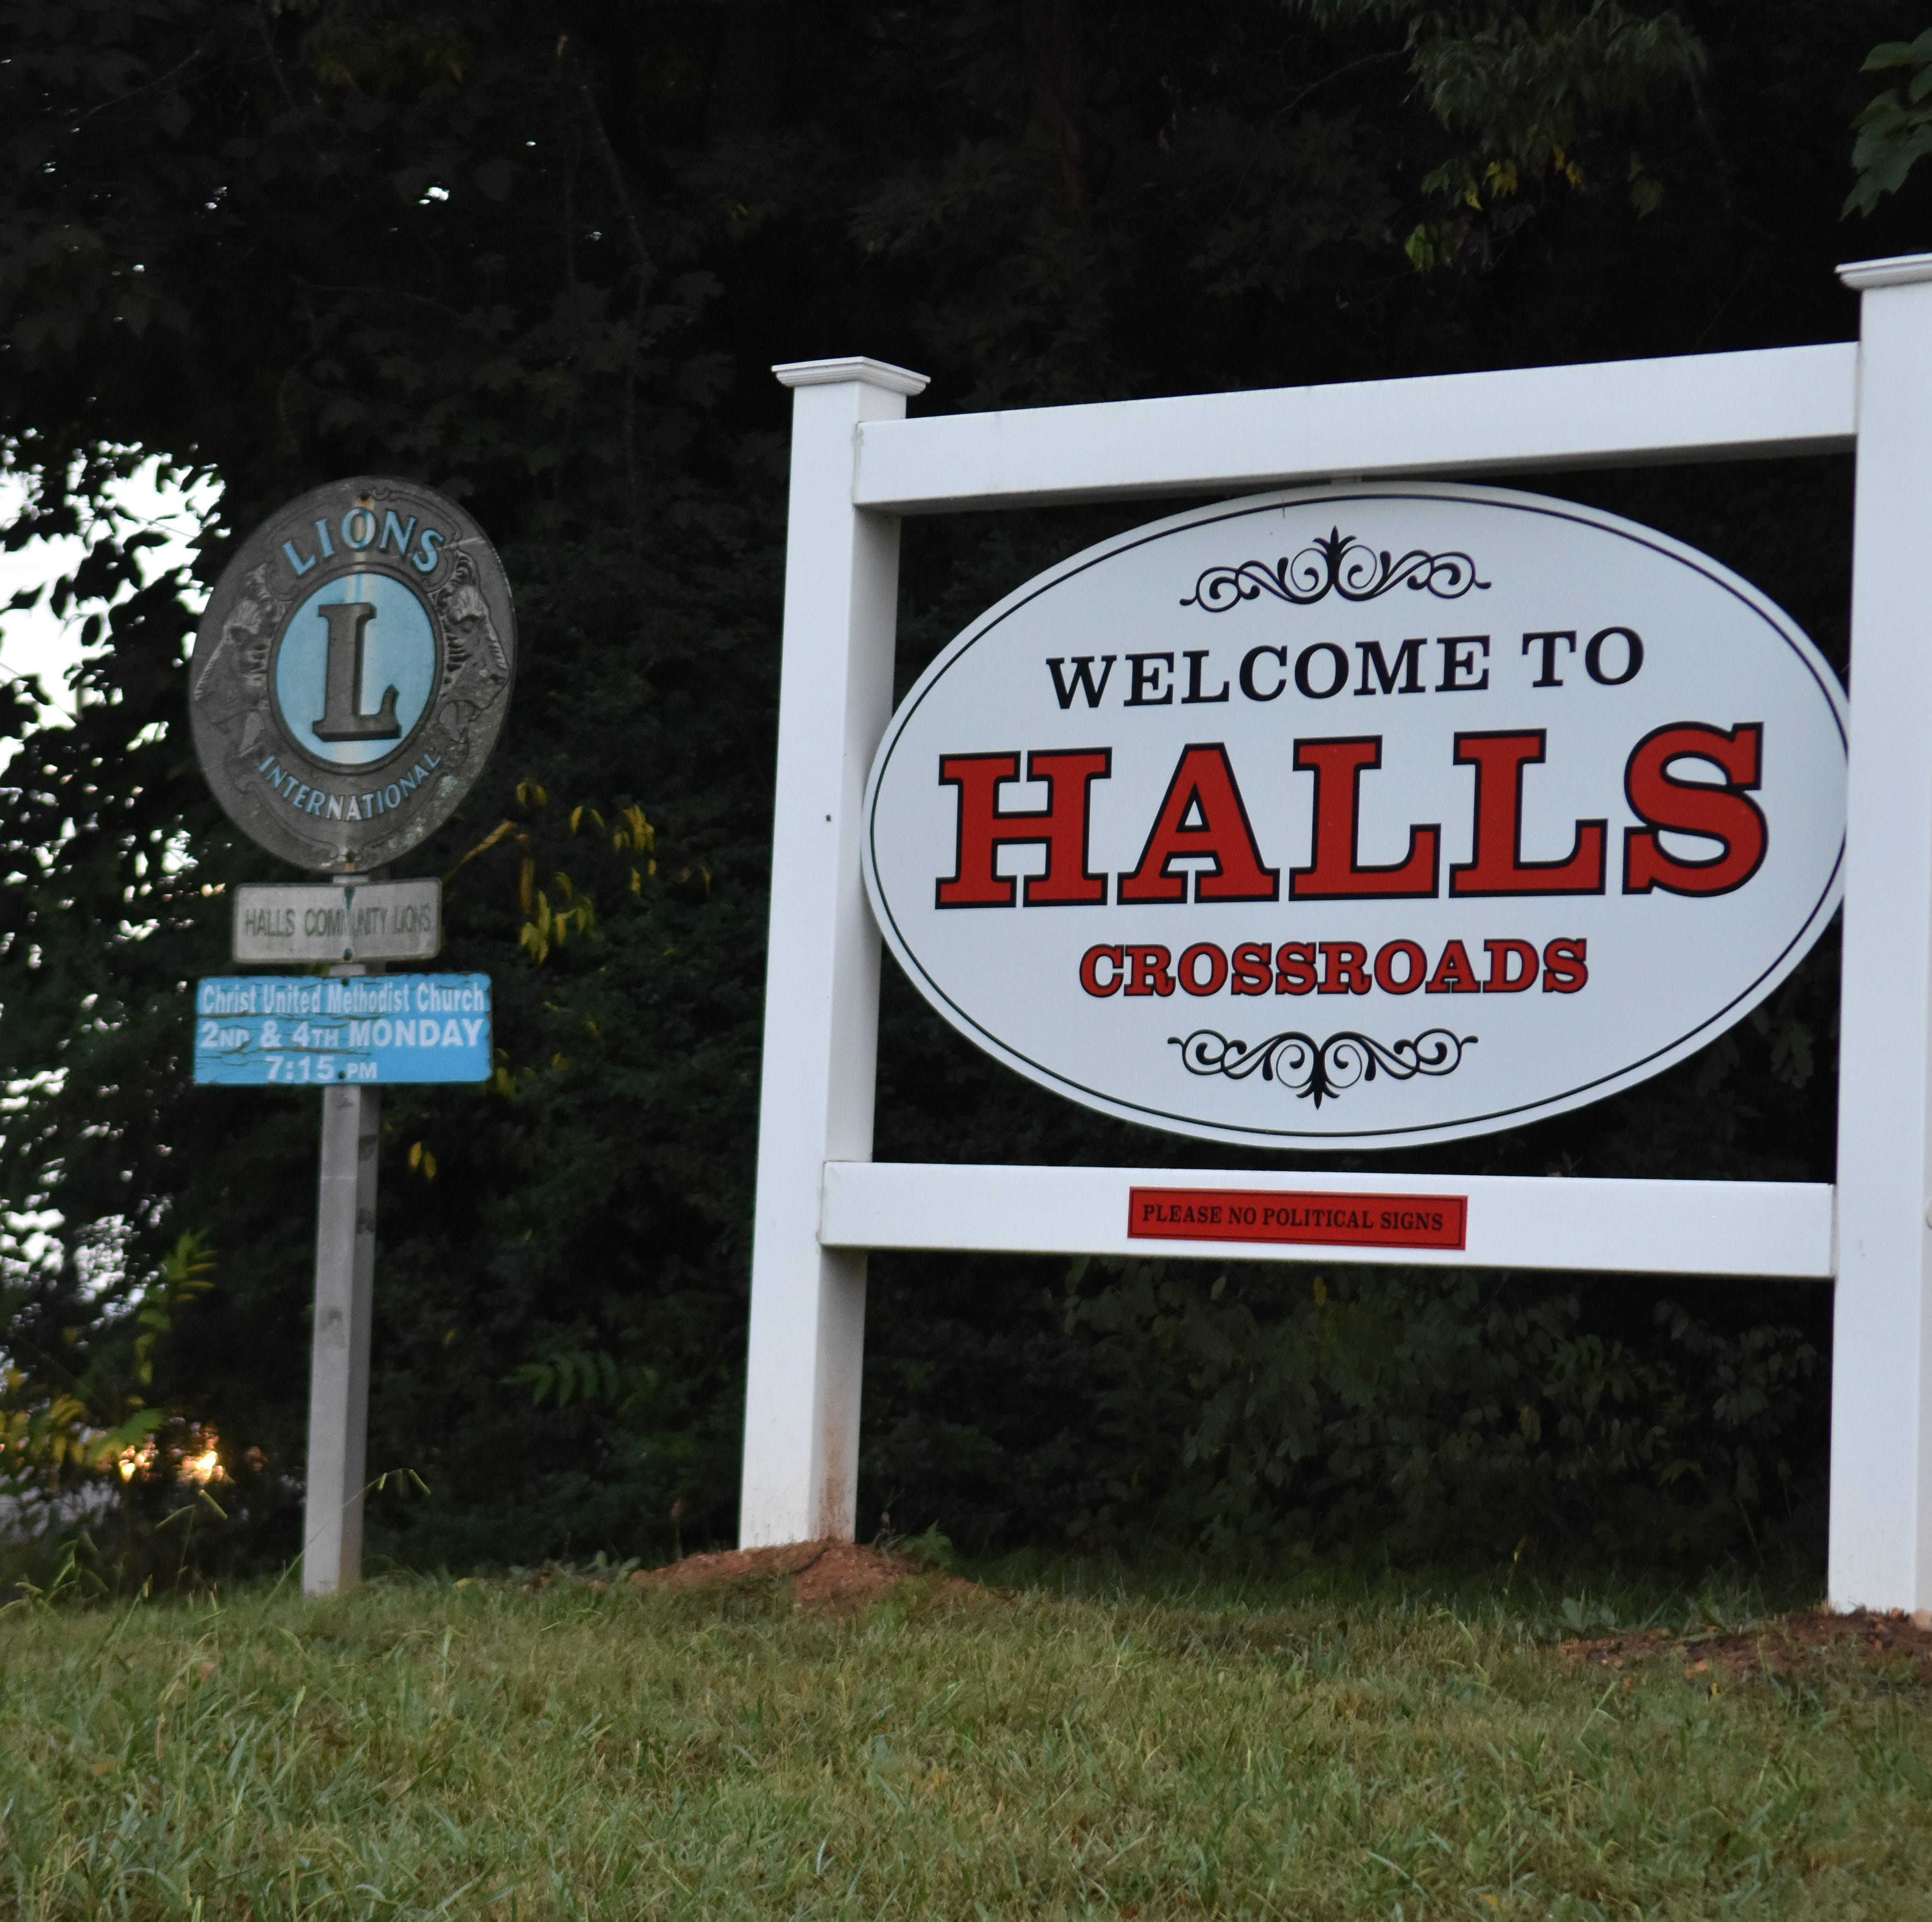 New signs, street lighting, an Arby's? Officials want help to rebrand Halls